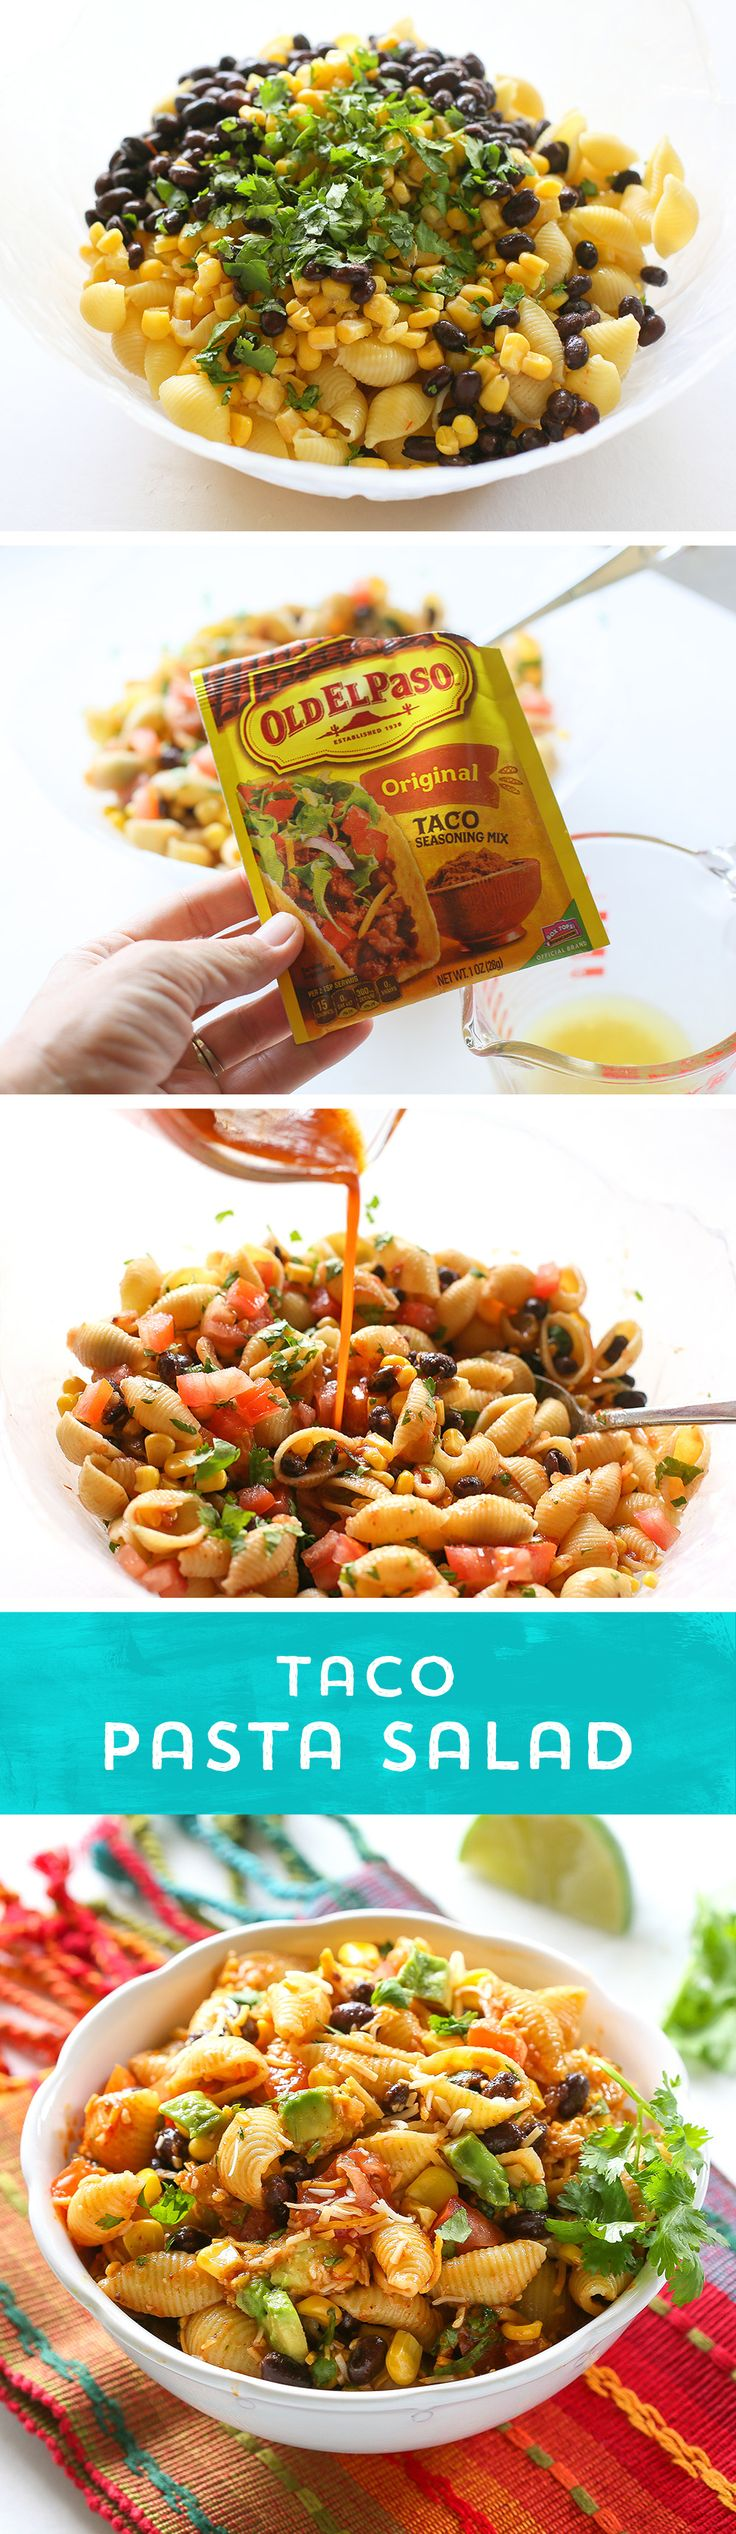 Need an easy dinner idea, or a party dish to share? This Taco Pasta Salad from @GirlWhoAte is perfect! It comes together quickly, and you can control the spice- just add more or less Old El Paso Taco Seasoning™ and your favorite salsa! Stand out at the party with this pasta salad with southwestern flair!